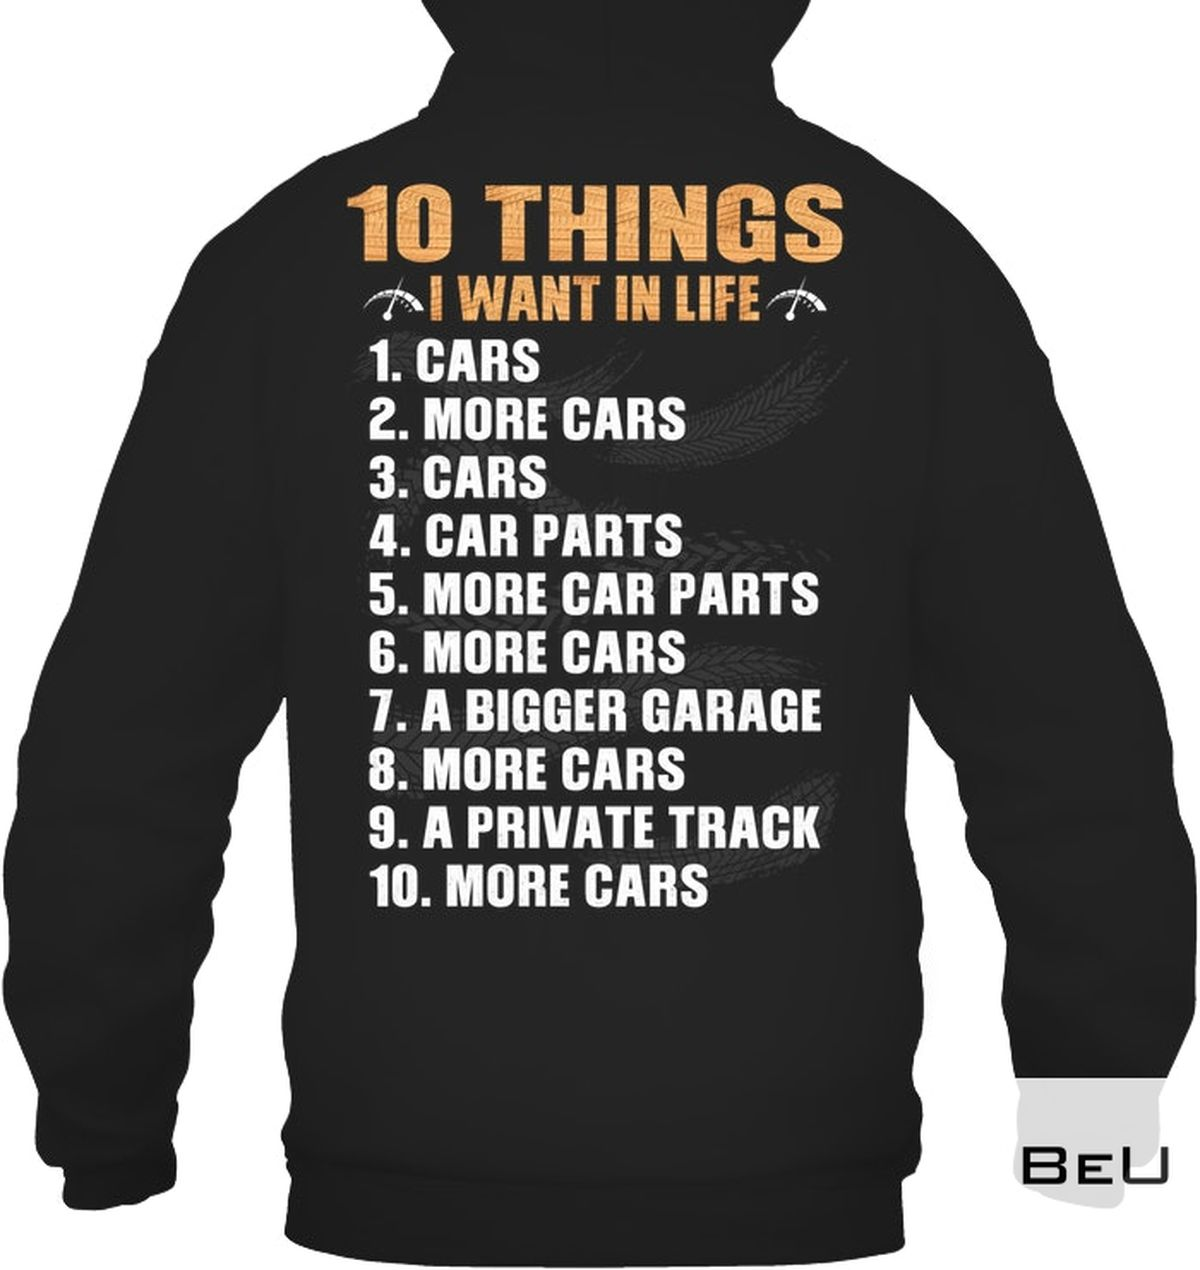 Great artwork! 10 Things I Want In Life Shirt